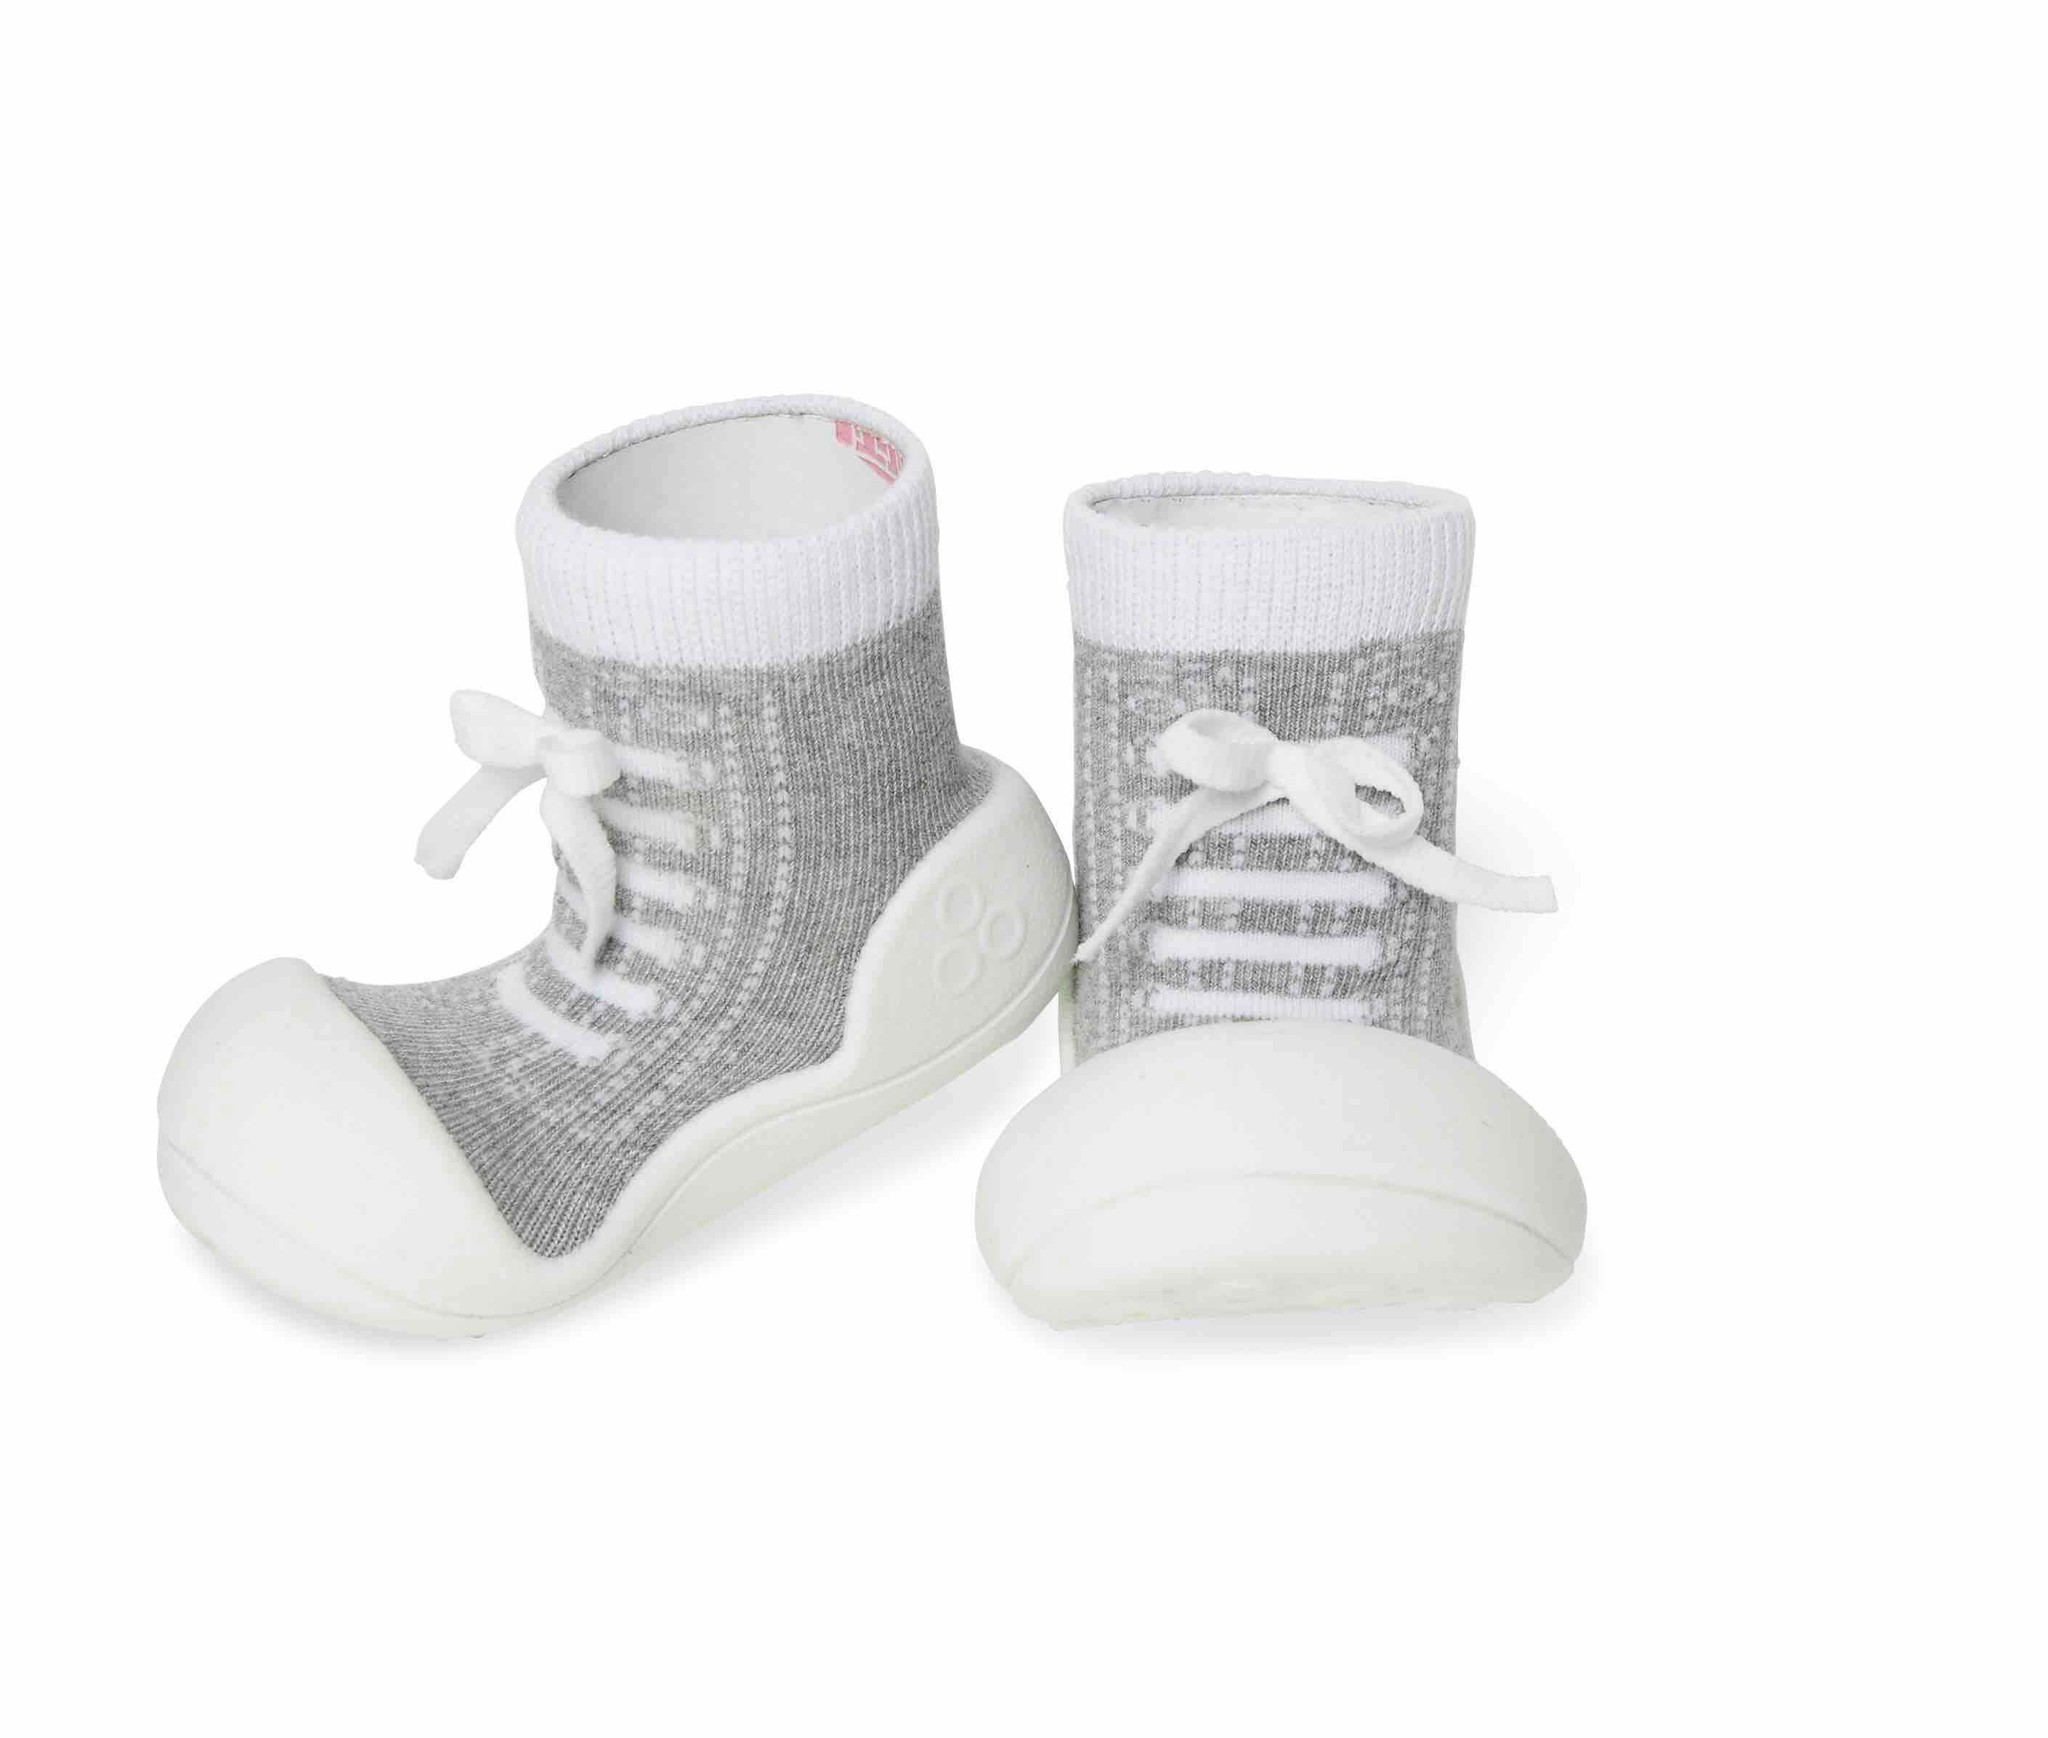 Attipas baby shoes in Sneaker Grey